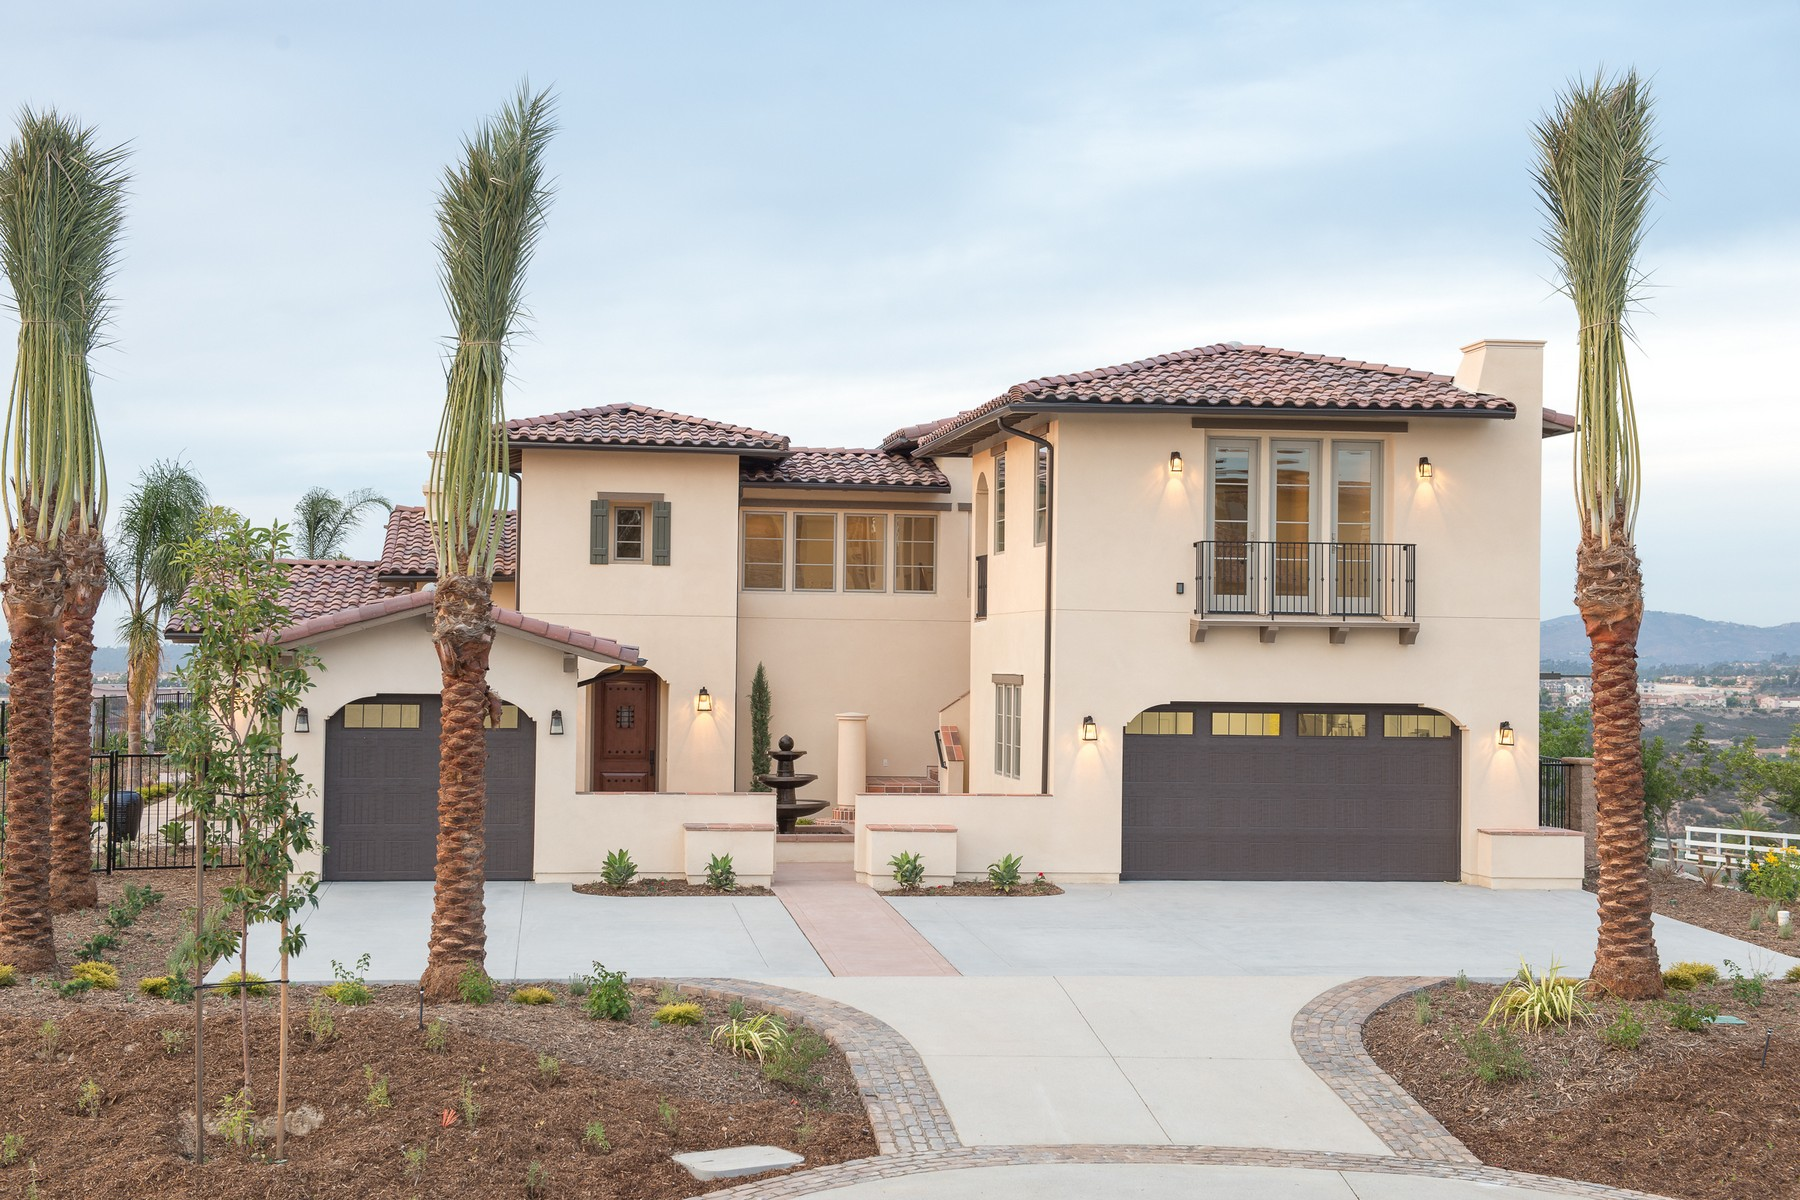 Single Family Home for Sale at 6575 Mesa Norte Drive San Diego, California 92130 United States